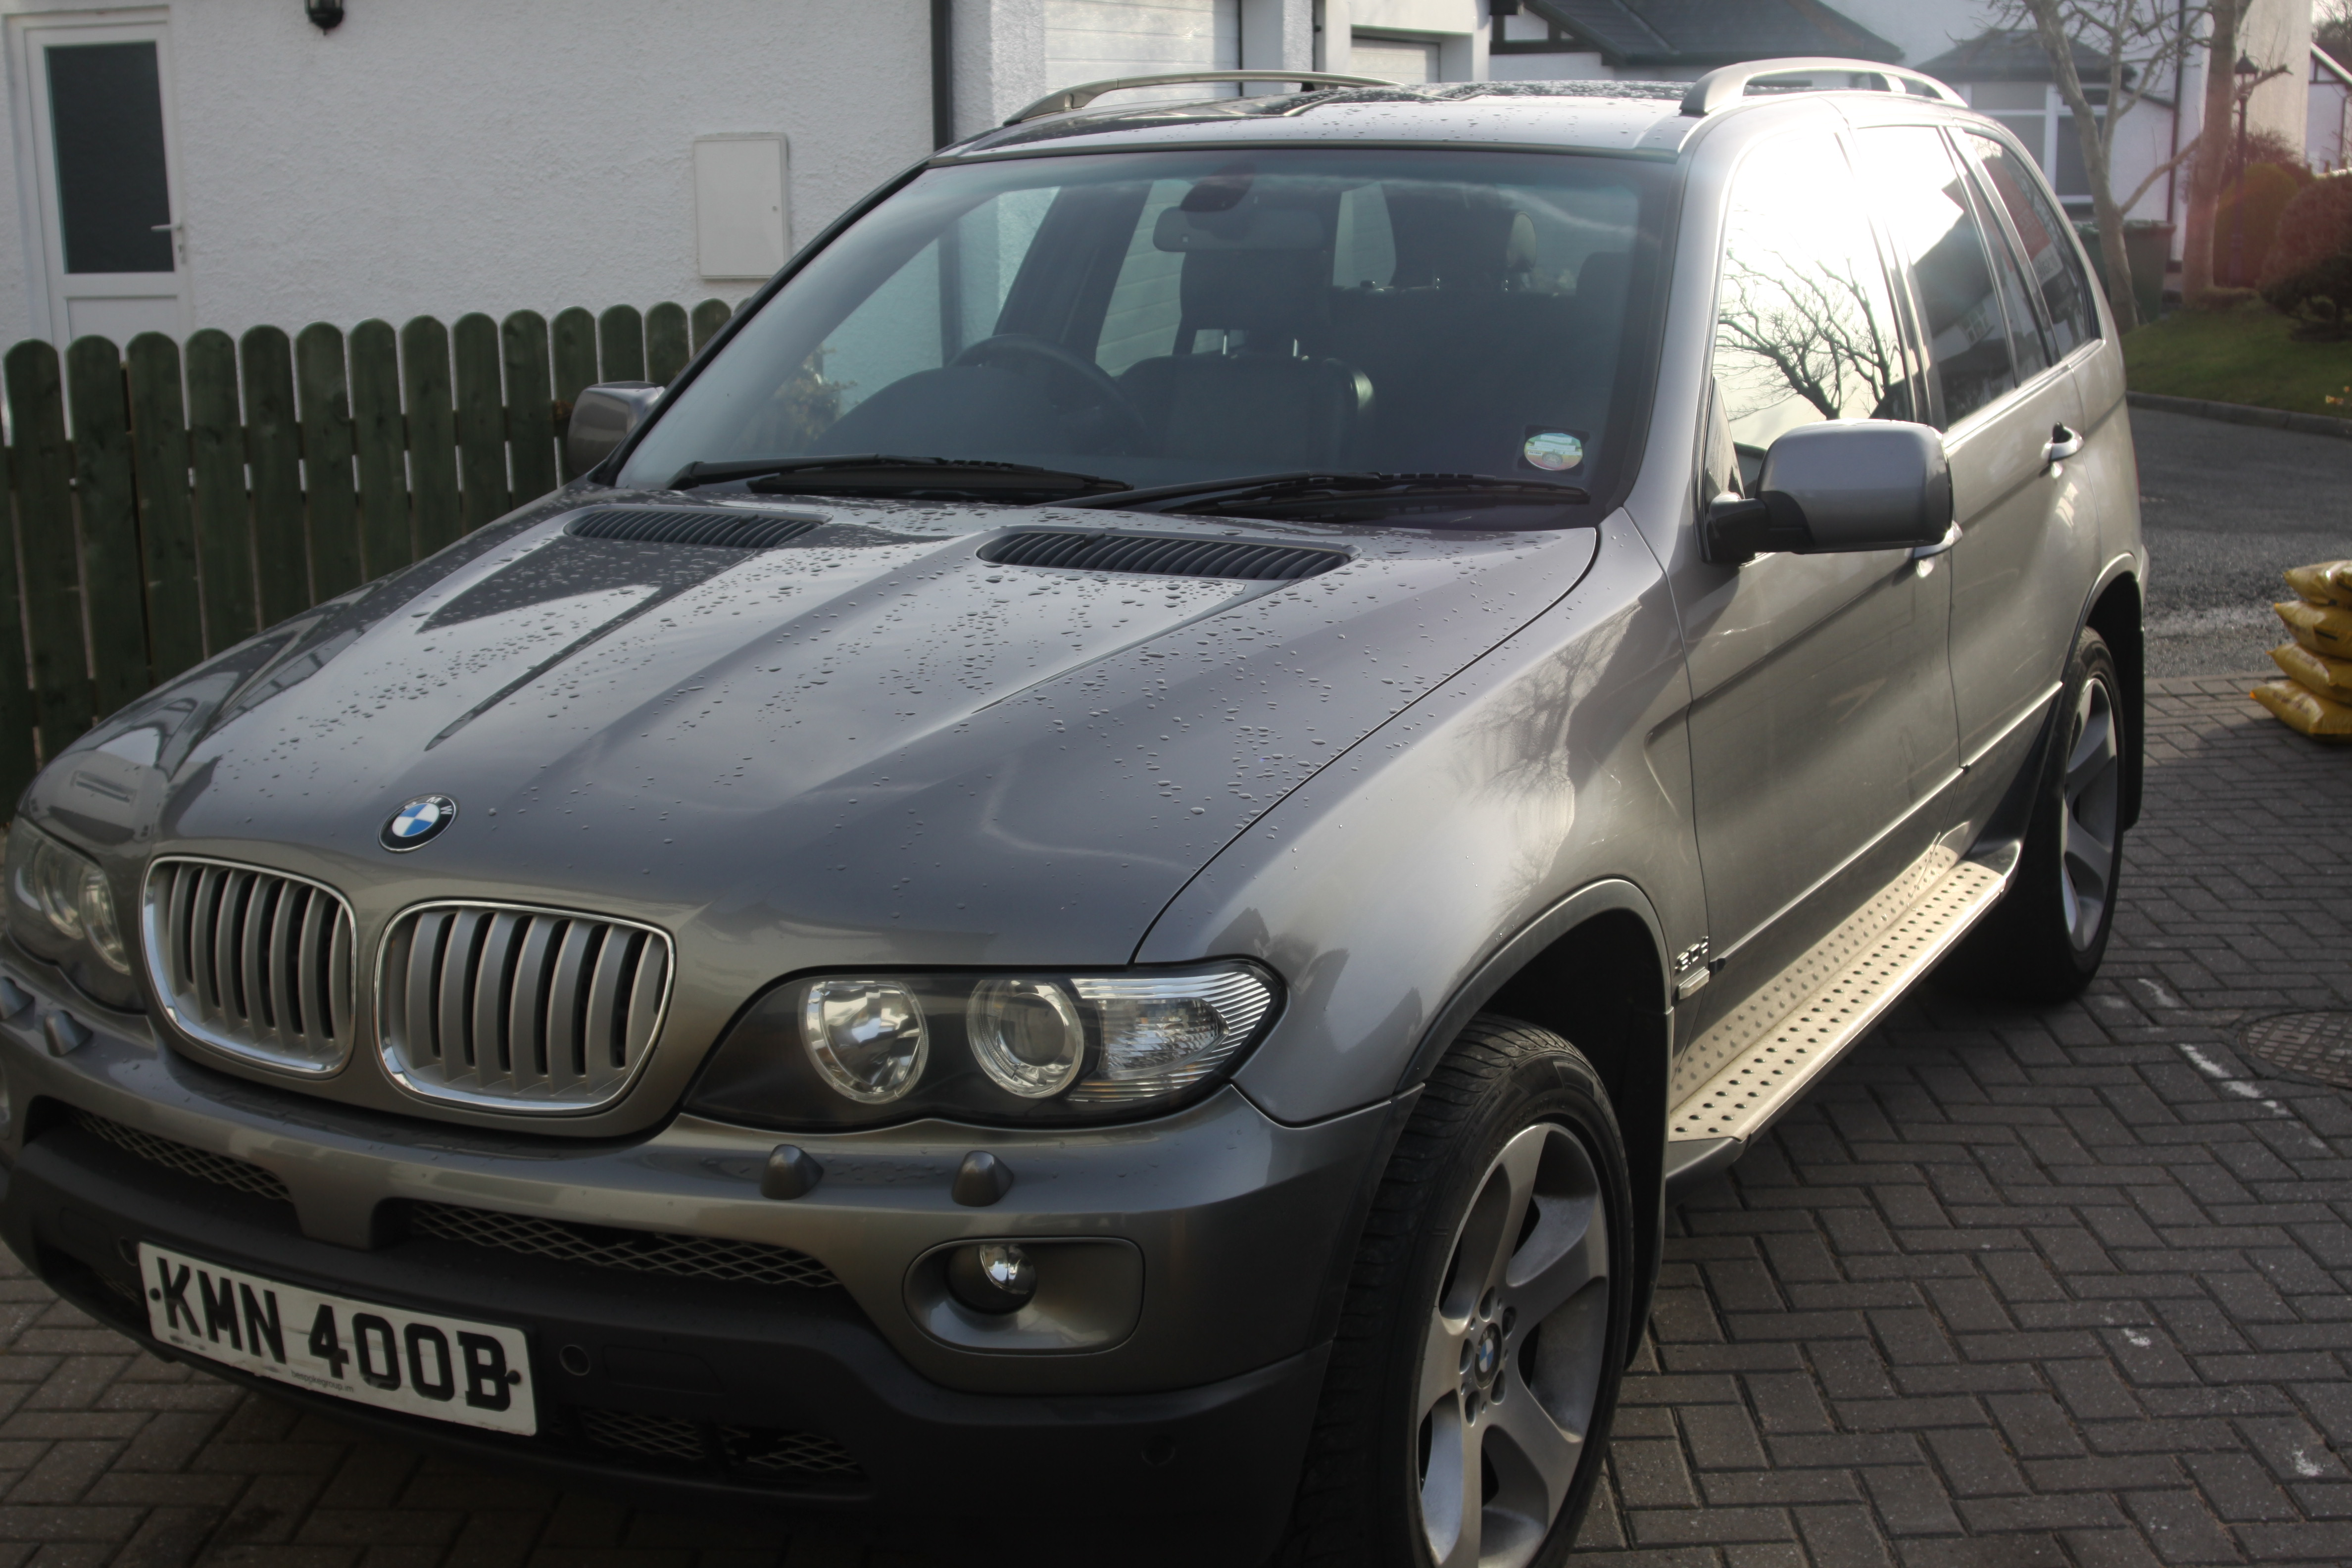 BMW  X5 - Sport 2993 cc from private